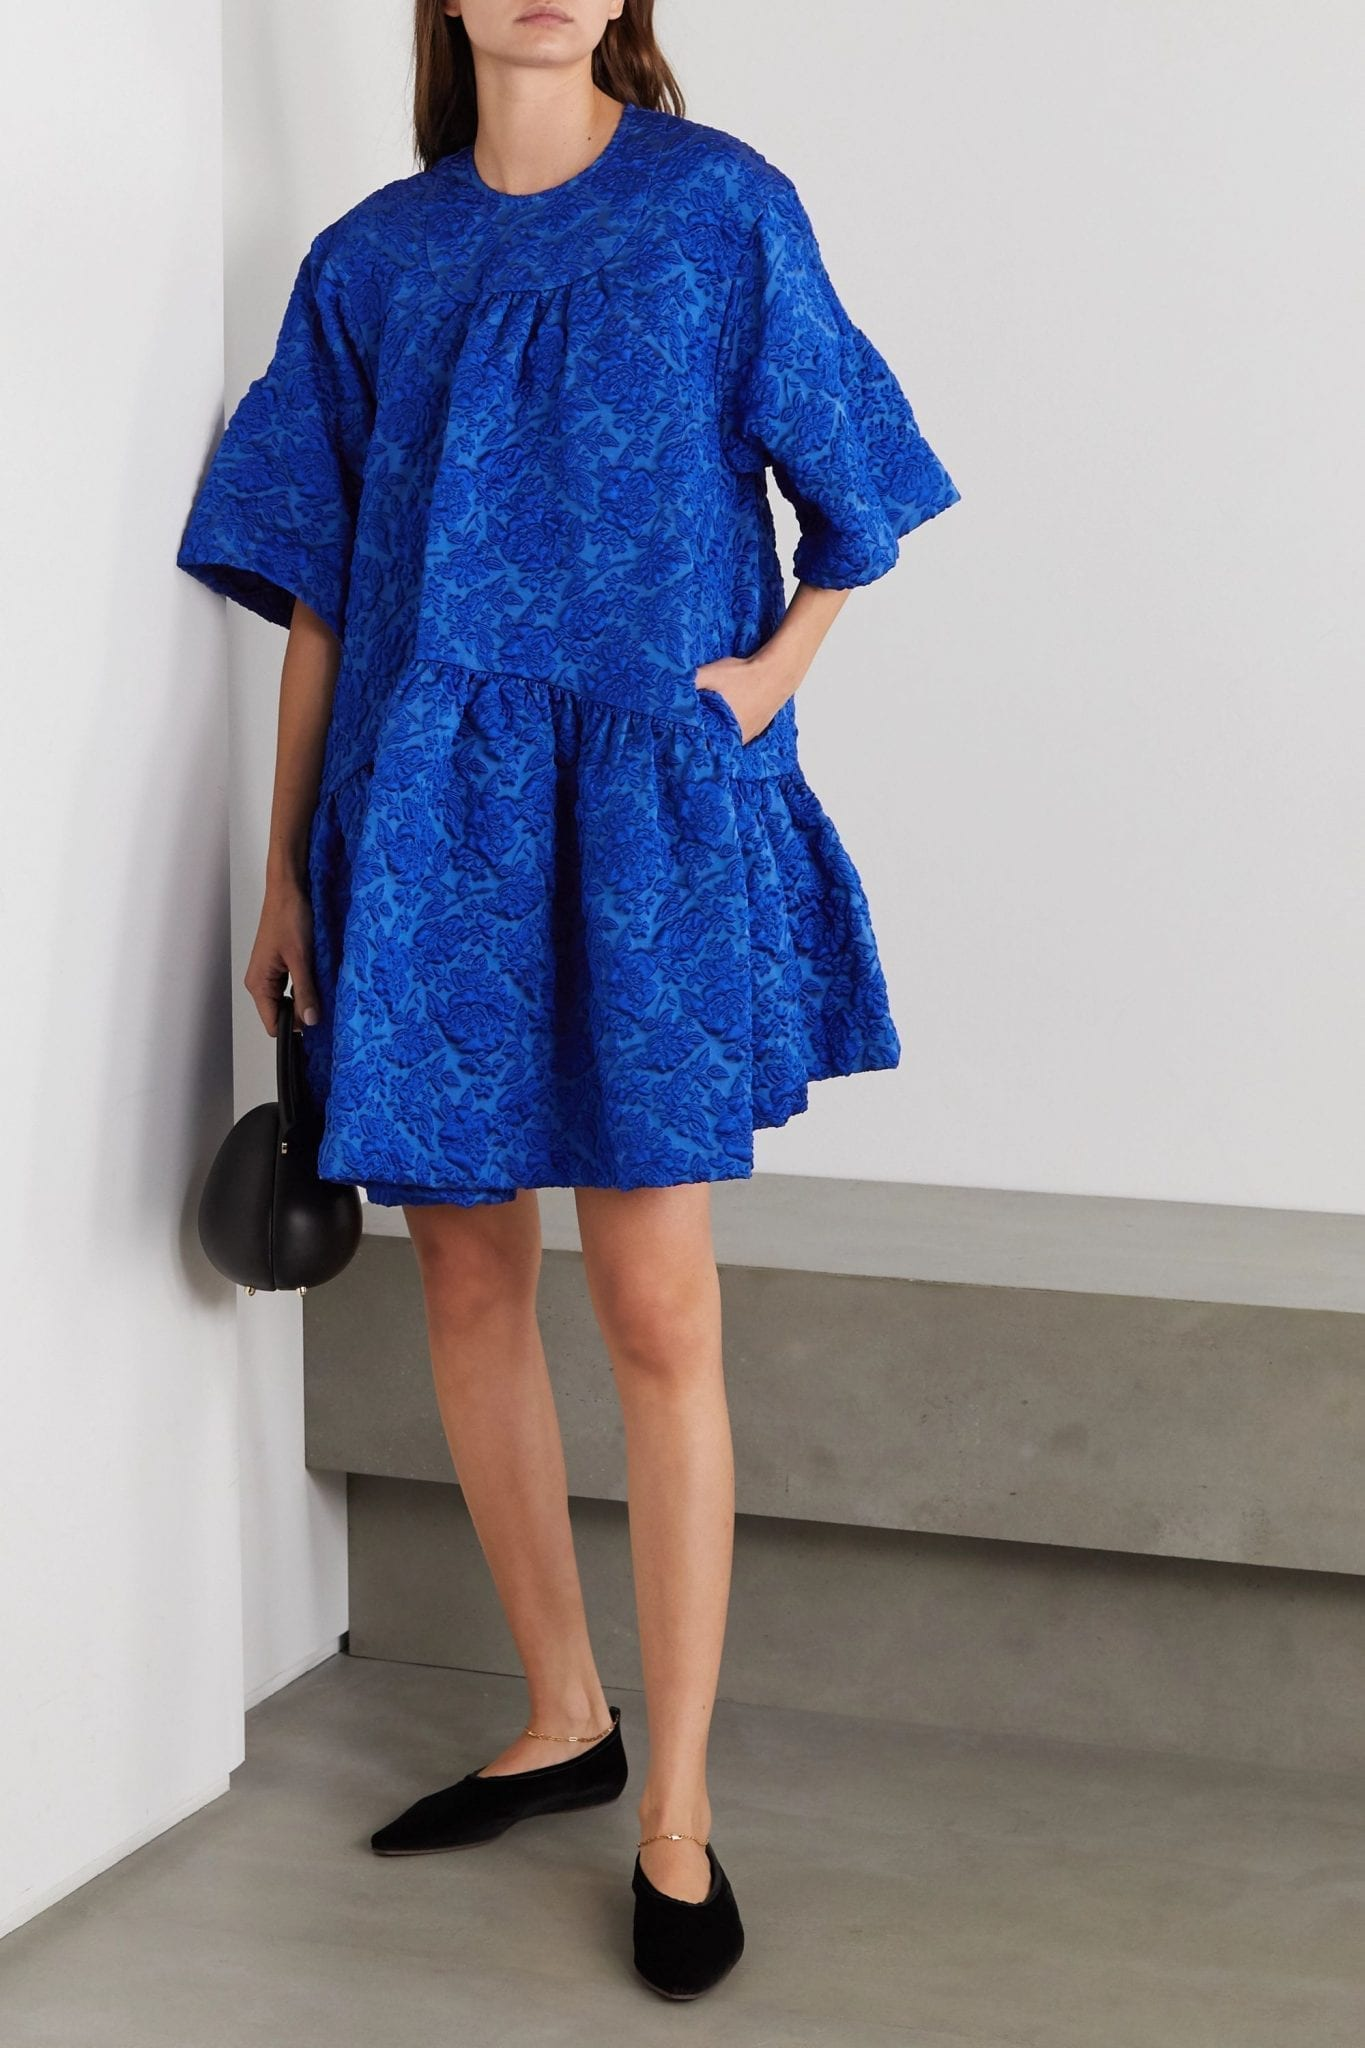 SIMONE ROCHA Oversized Tiered Cloqué Mini Dress